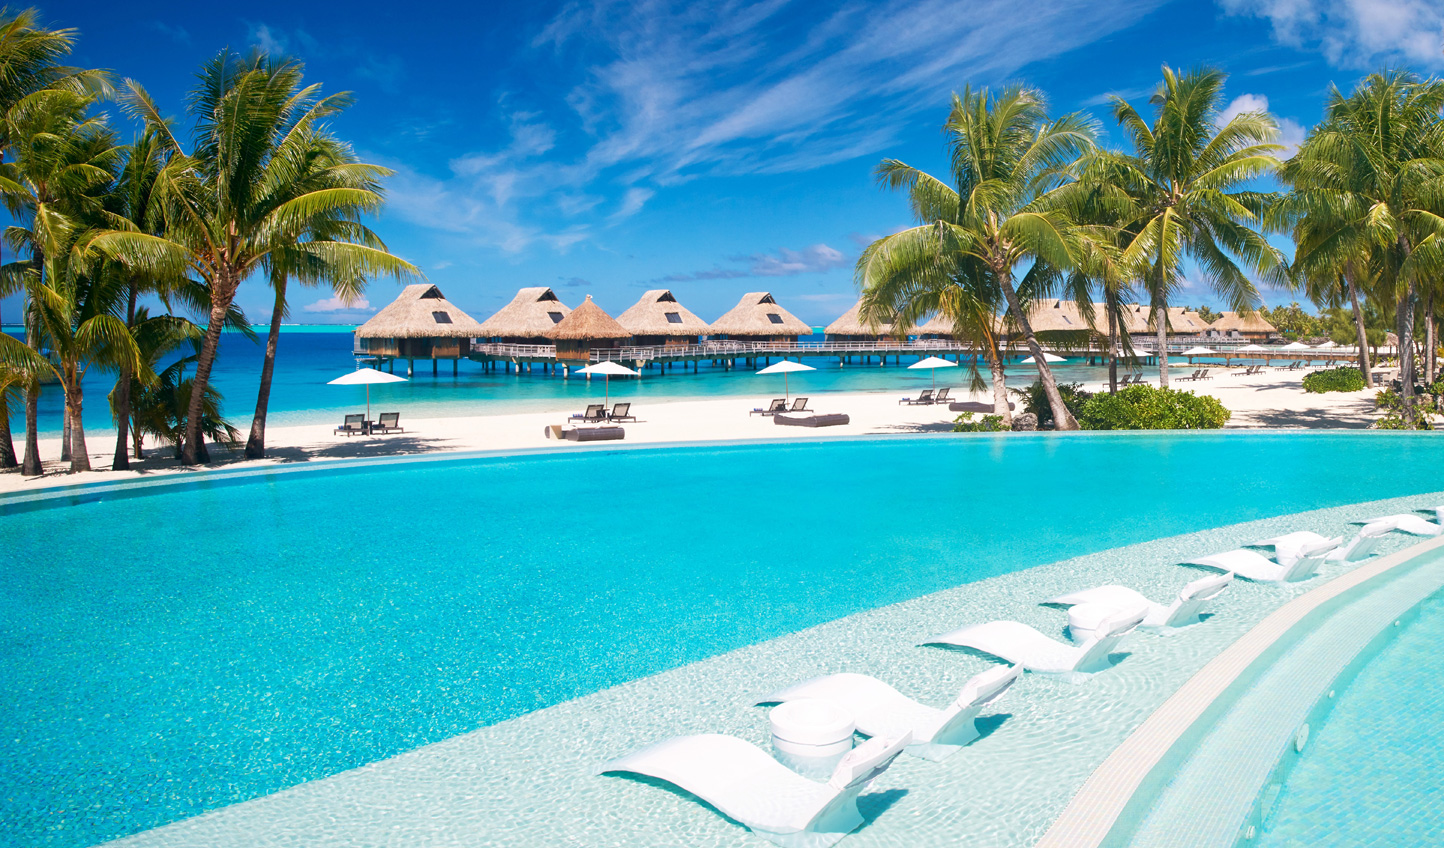 Finish up your trip in the luxurious surrounds of Conrad Bora Bora Nui